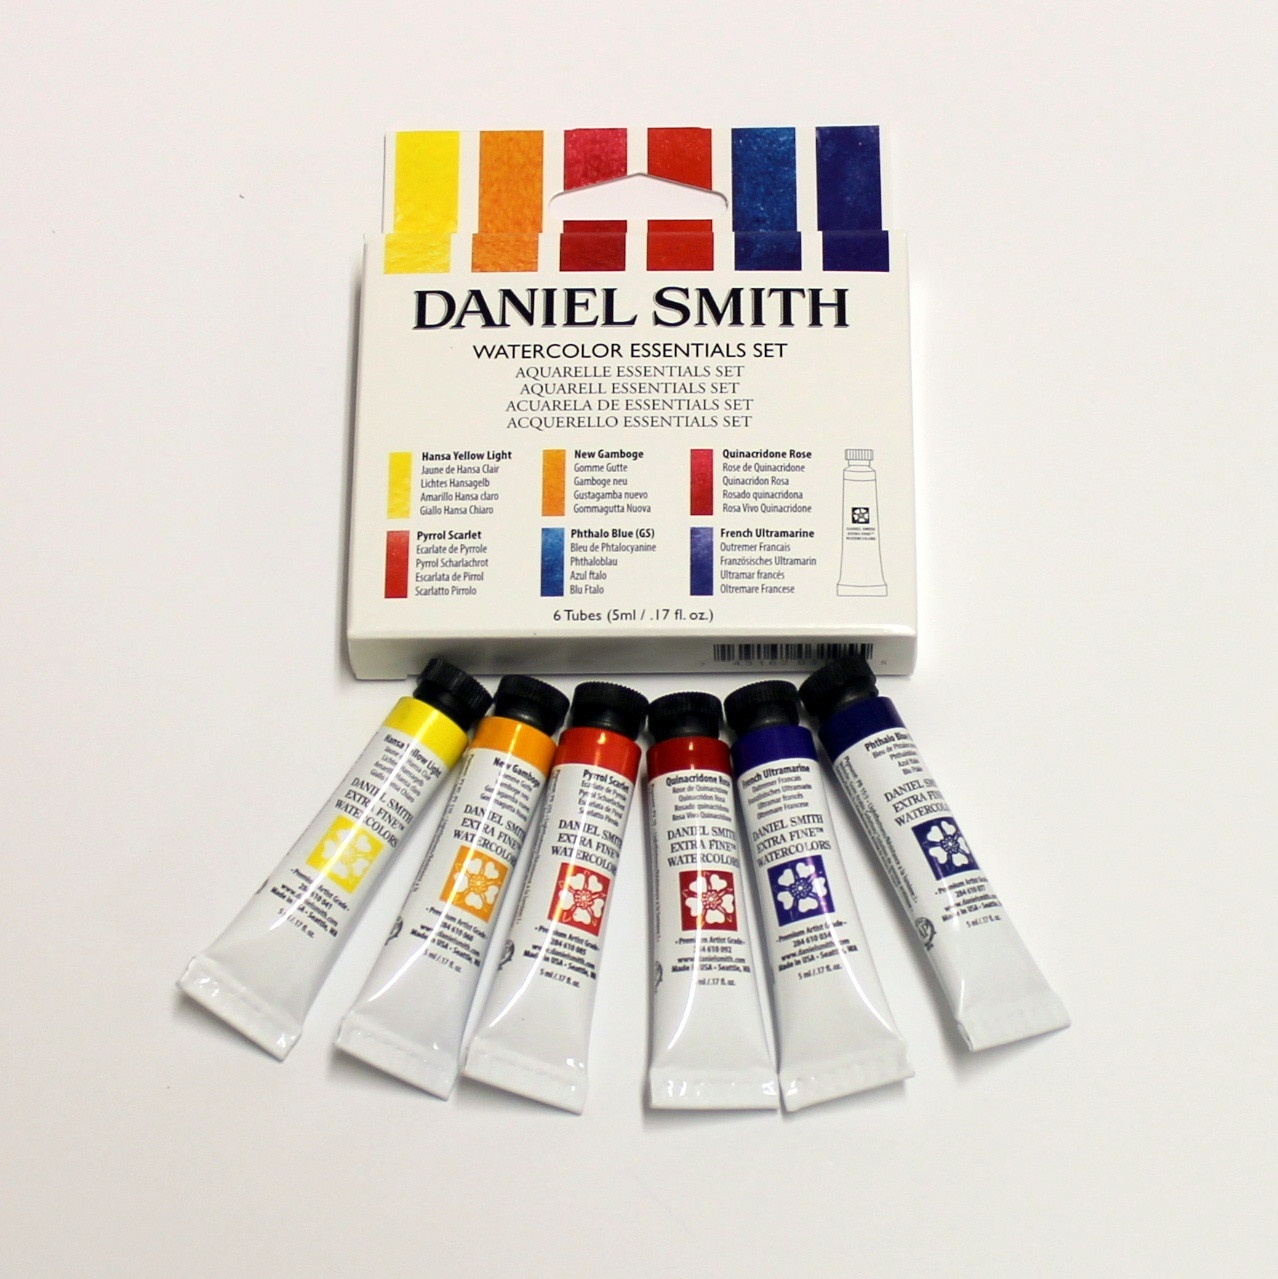 ds artist watercolour essentials set 5mlx6 italian artshop